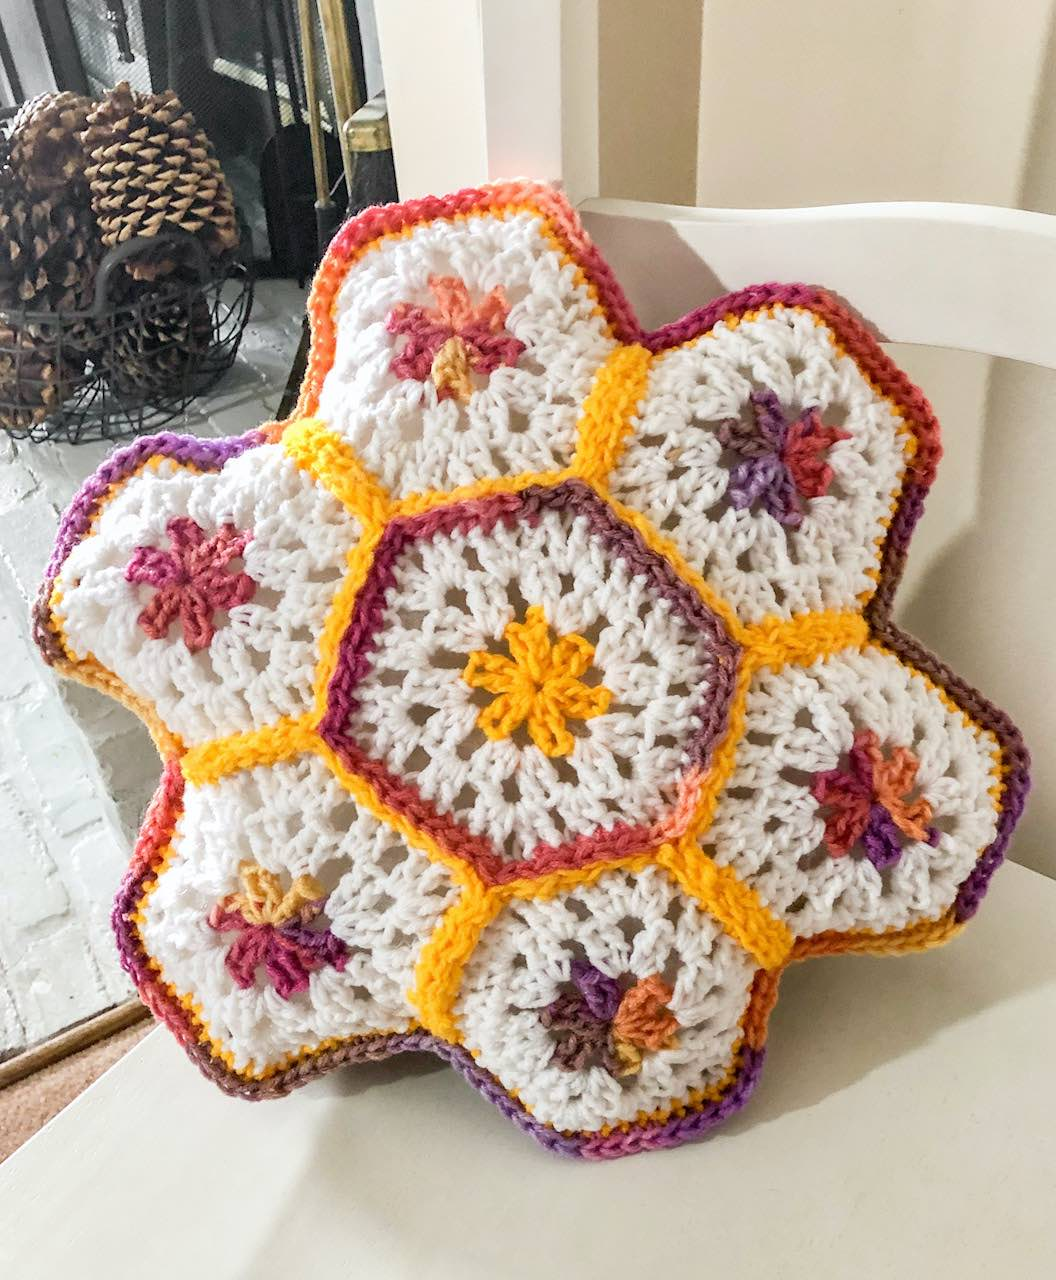 Crochet Granny Hexagon Pillow by itchinforsomestitchin.com